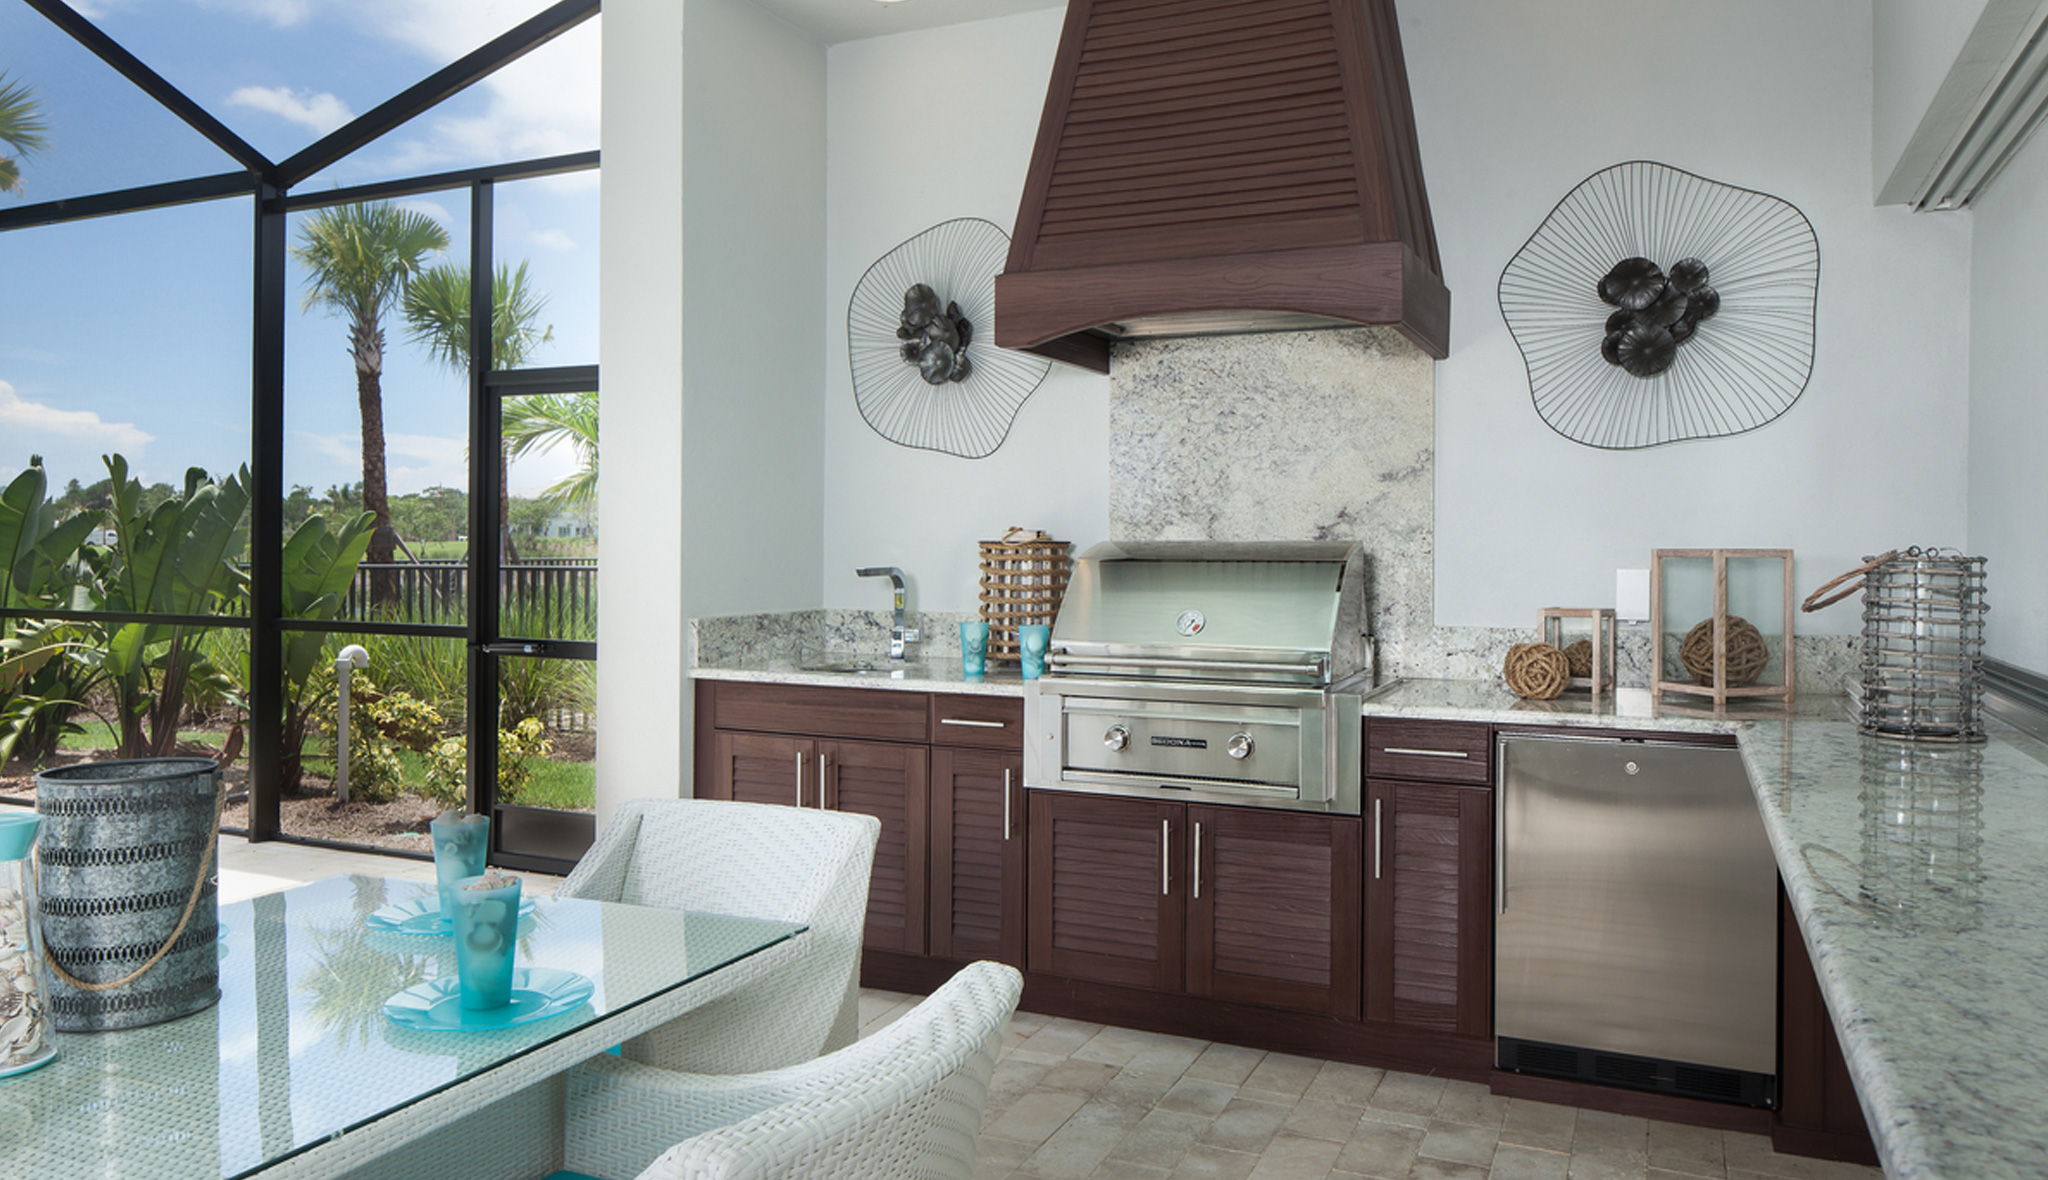 outdoor-summer-kitchen-cabinets-in-melbourne-FL-by-Hammond-Kitchens-and-Bath-slide-4